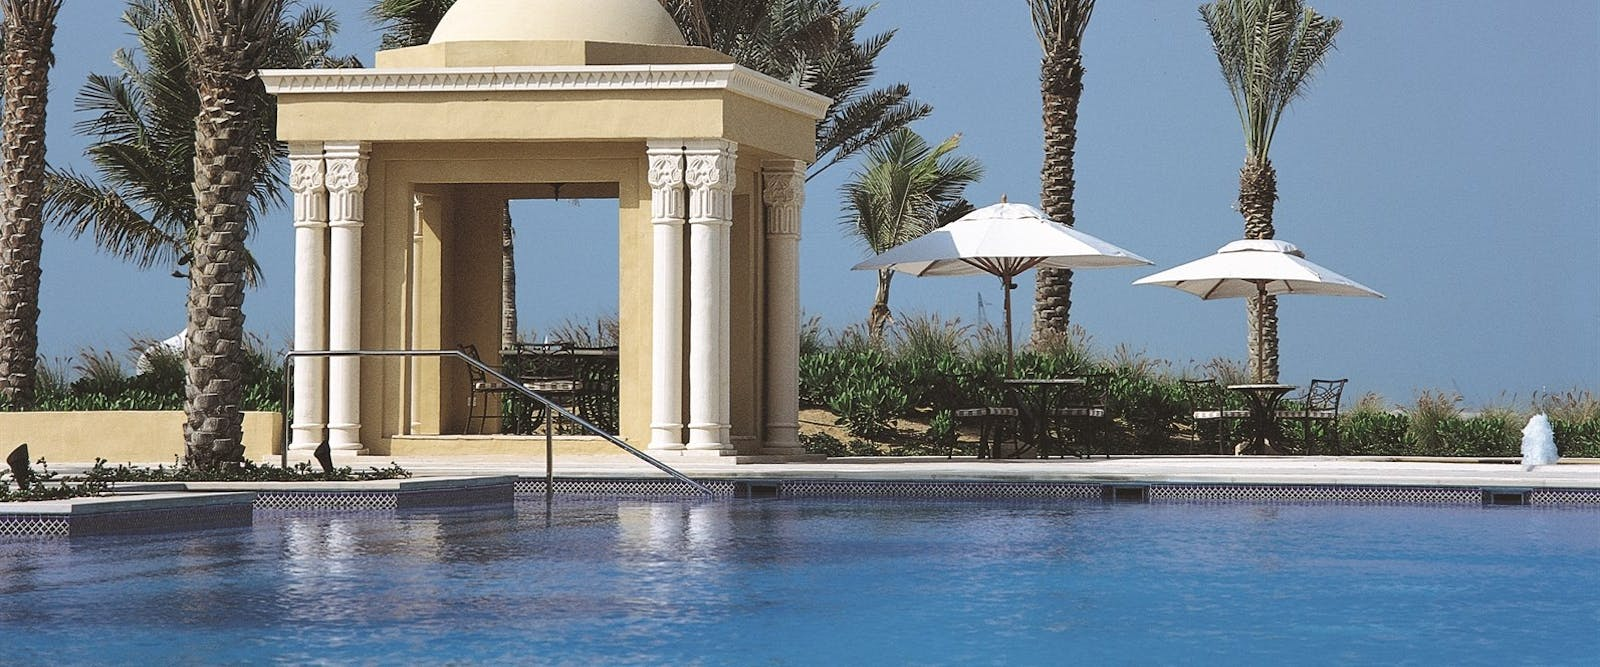 The Pool at One&Only Royal Mirage - The Residence & Spa, Dubai